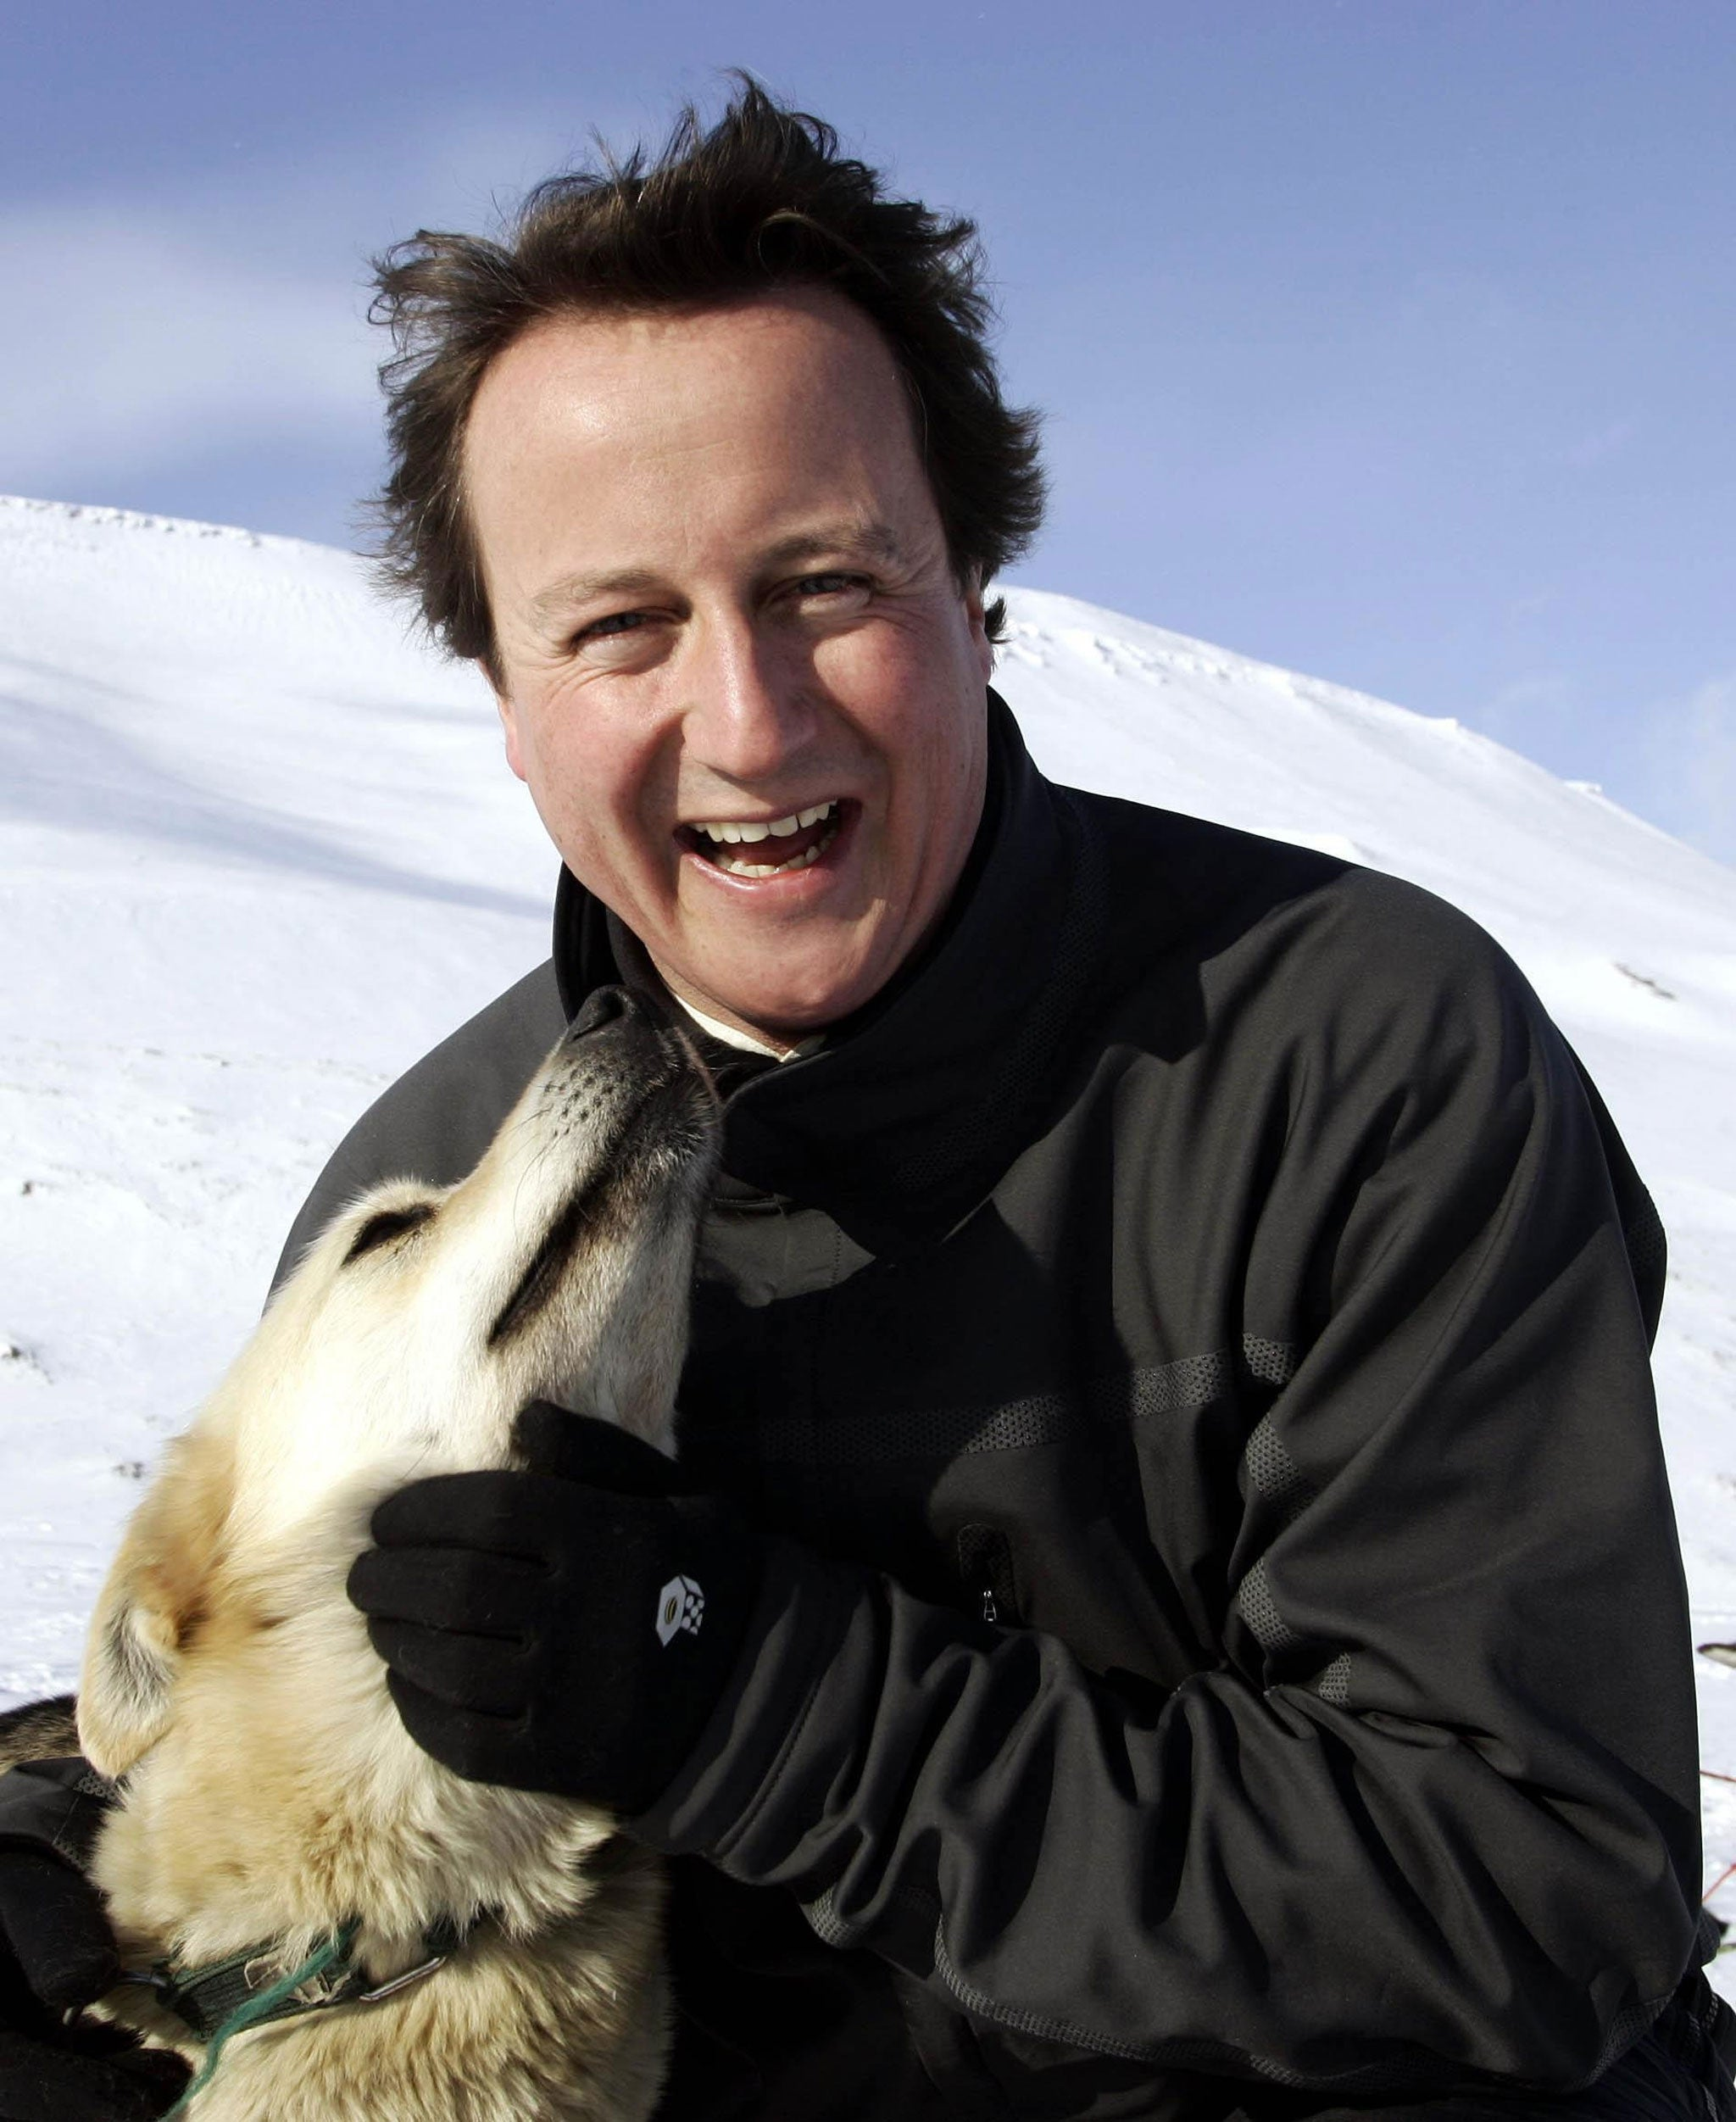 http://static.independent.co.uk/s3fs-public/thumbnails/image/2013/10/16/13/david-cameron_1.jpg